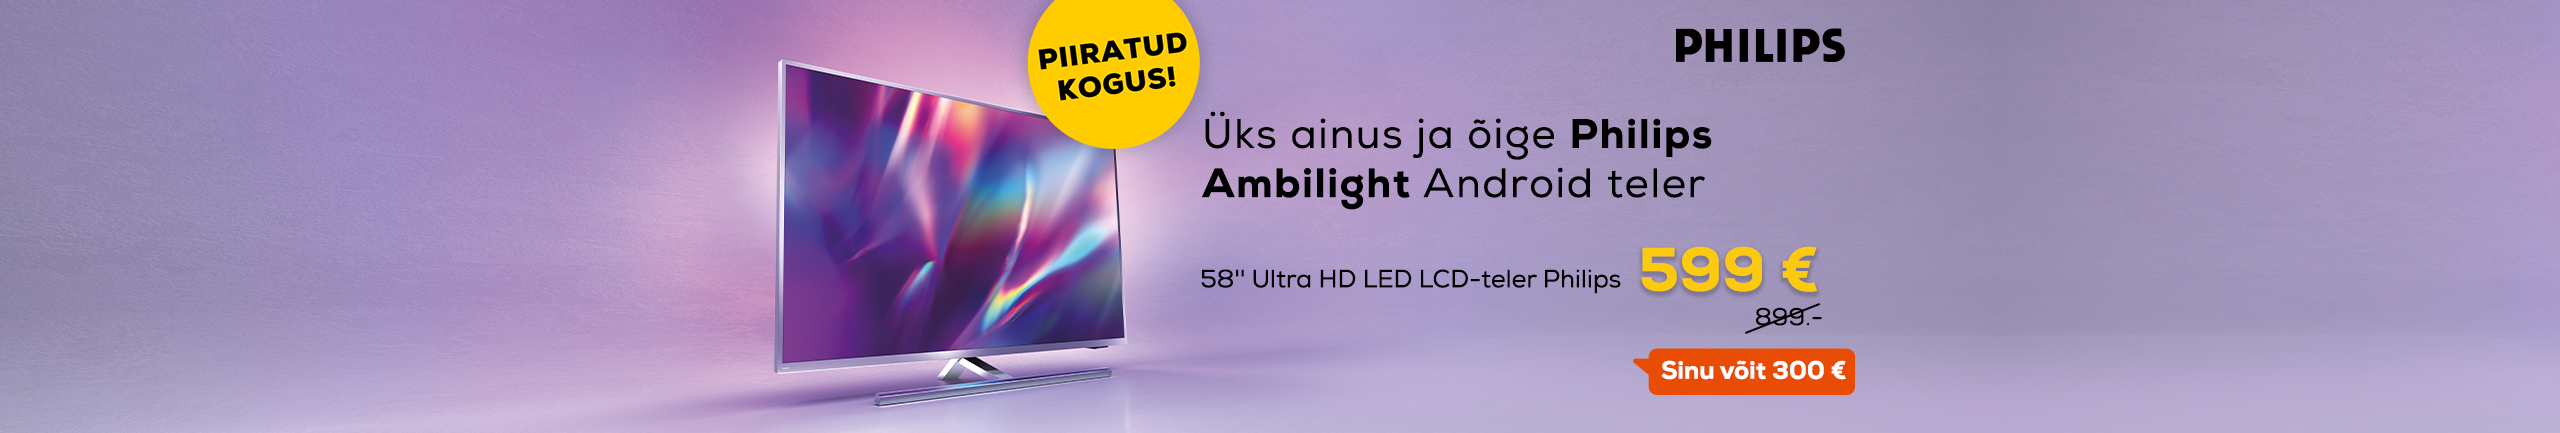 Super price for 58'' Ultra HD LED LCD-TV Philips